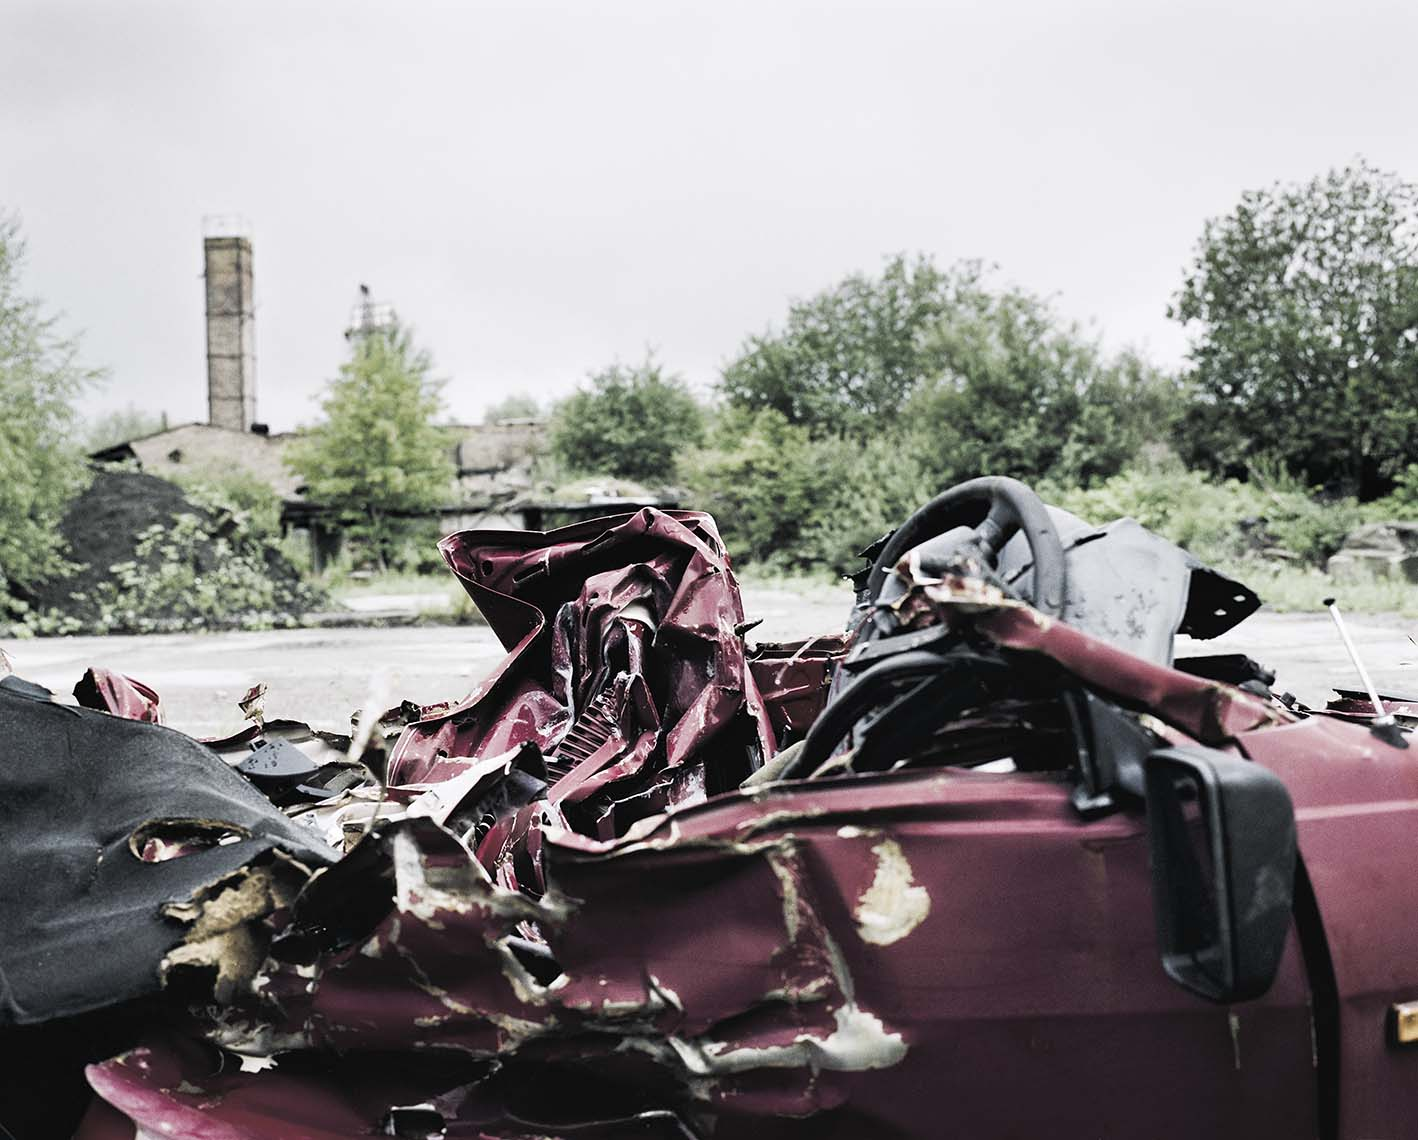 Rostock_Wreckage_37x46copy